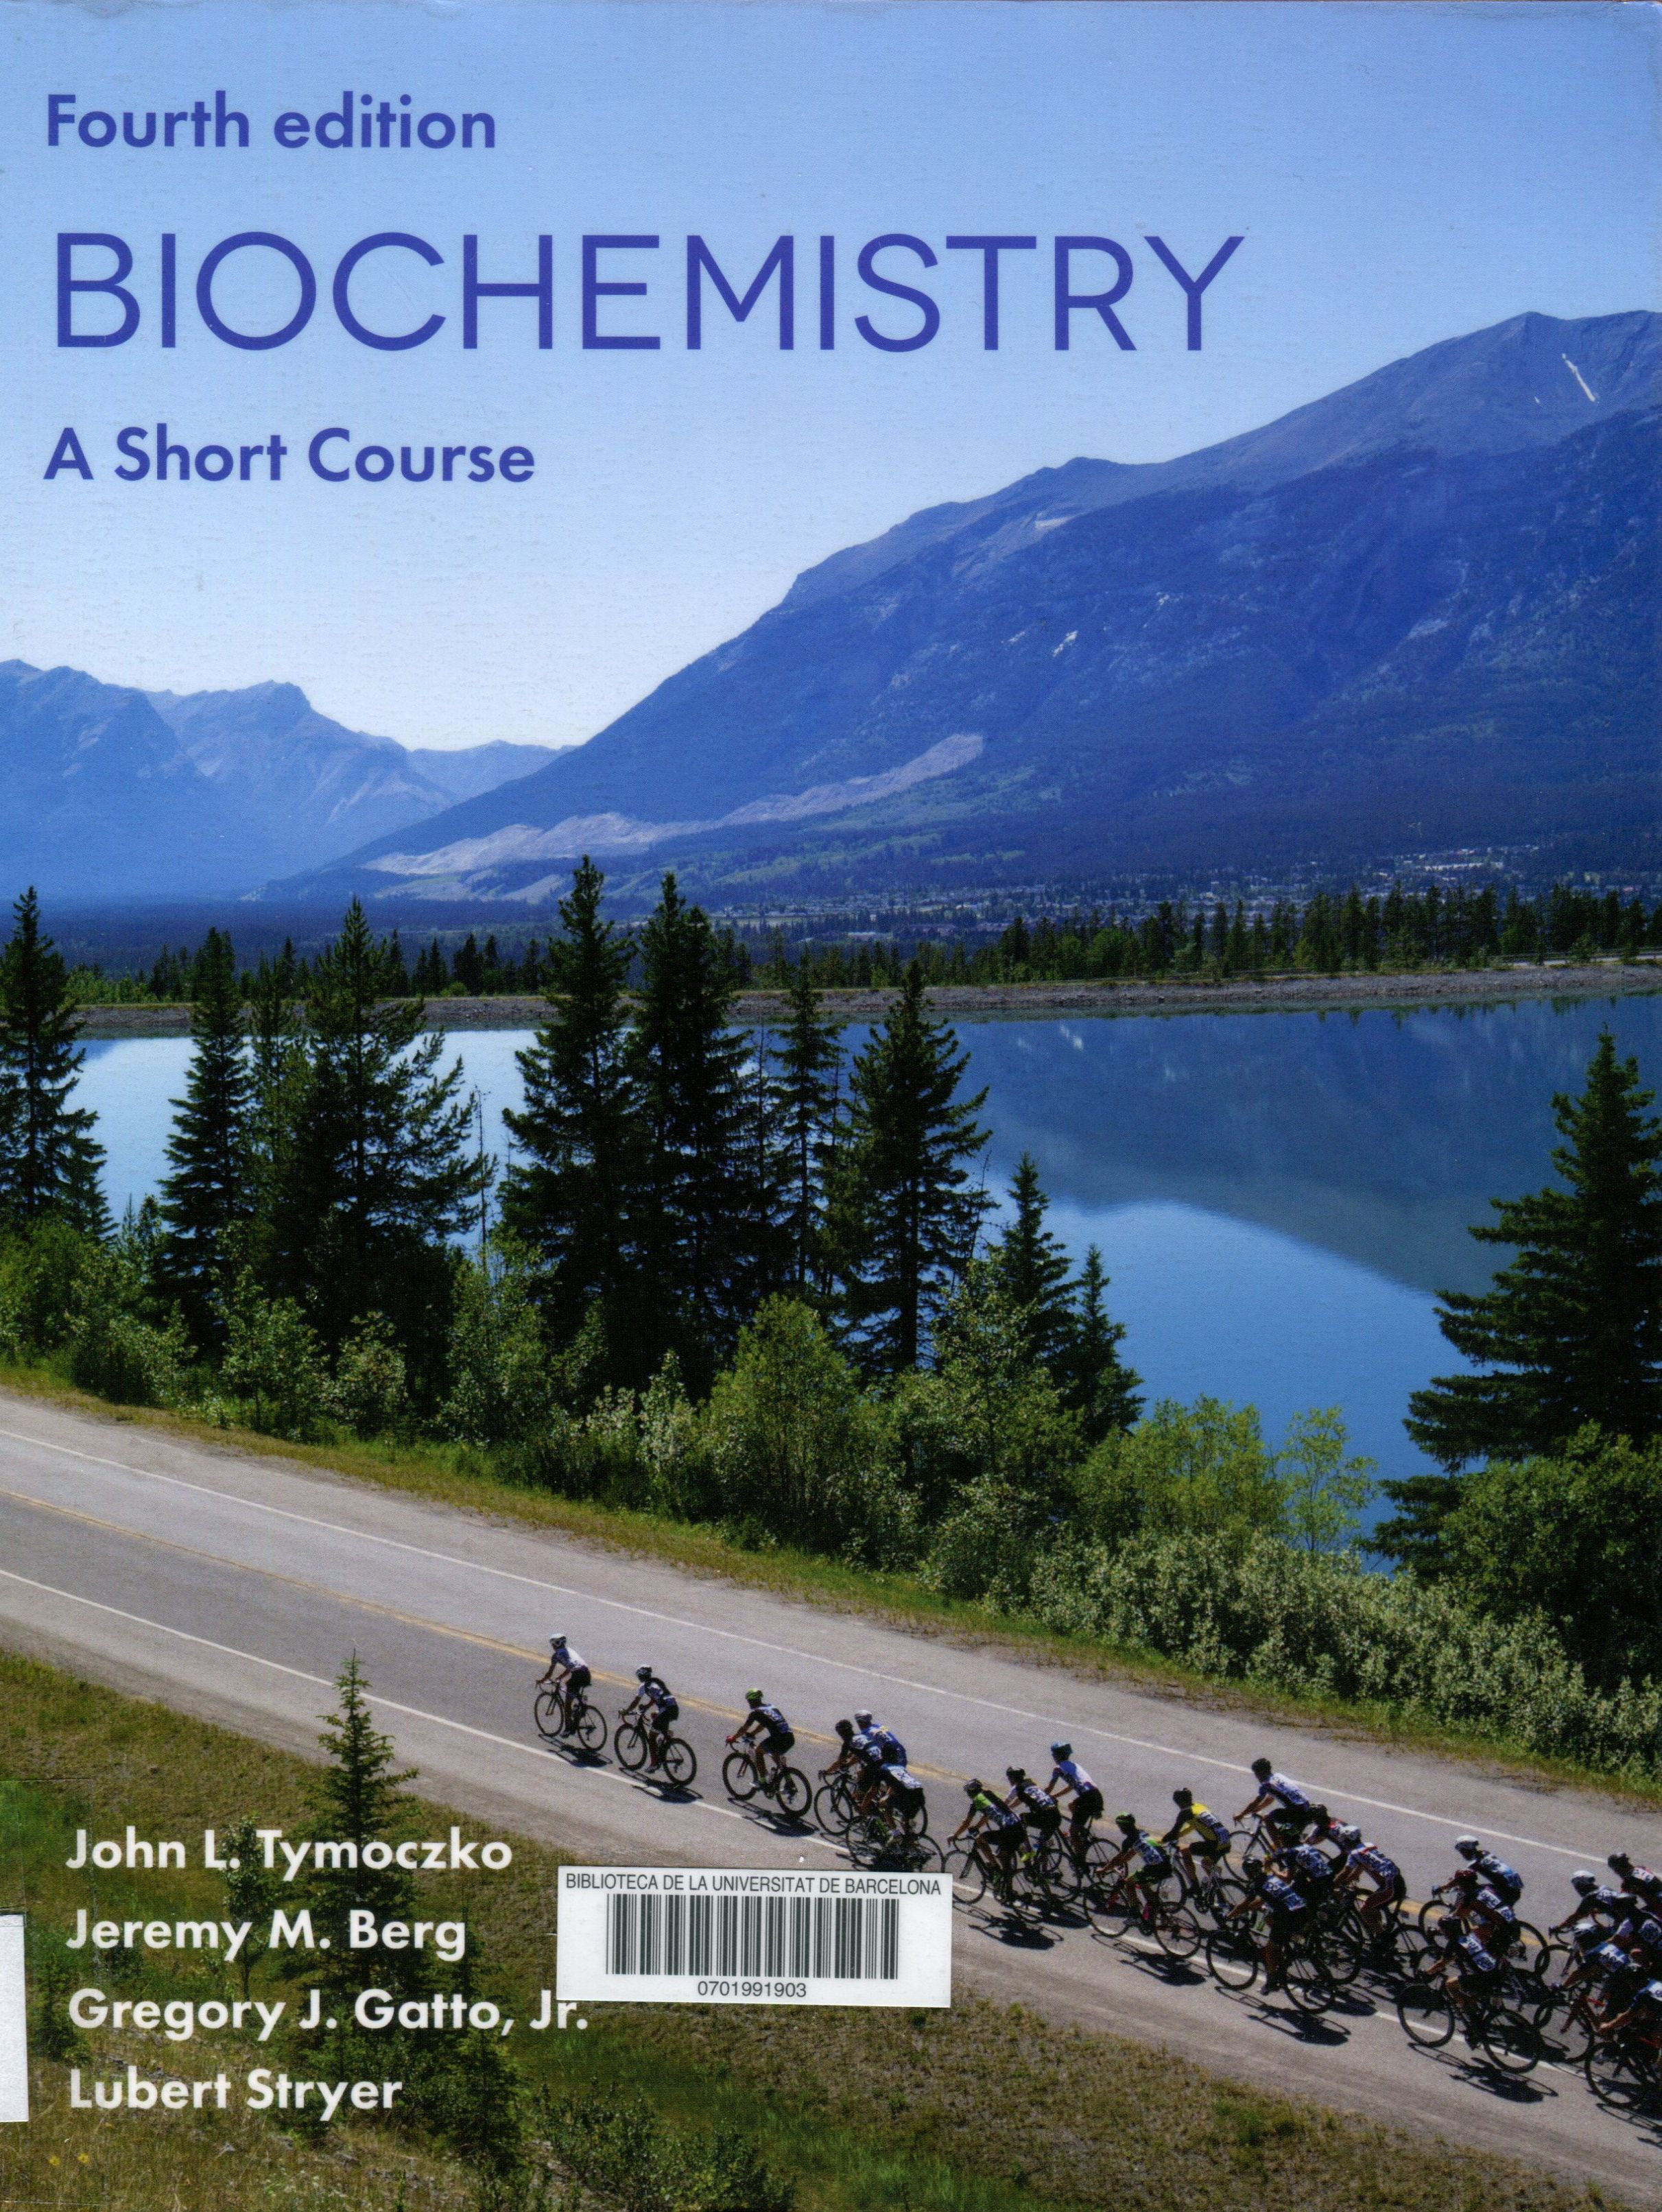 Biochemistry A Short Course John L Tymoczko Jeremy M Berg Gregory J Gatto Jr Lubert Stryer New York W H Freeman And Company 2019 Novetatscr